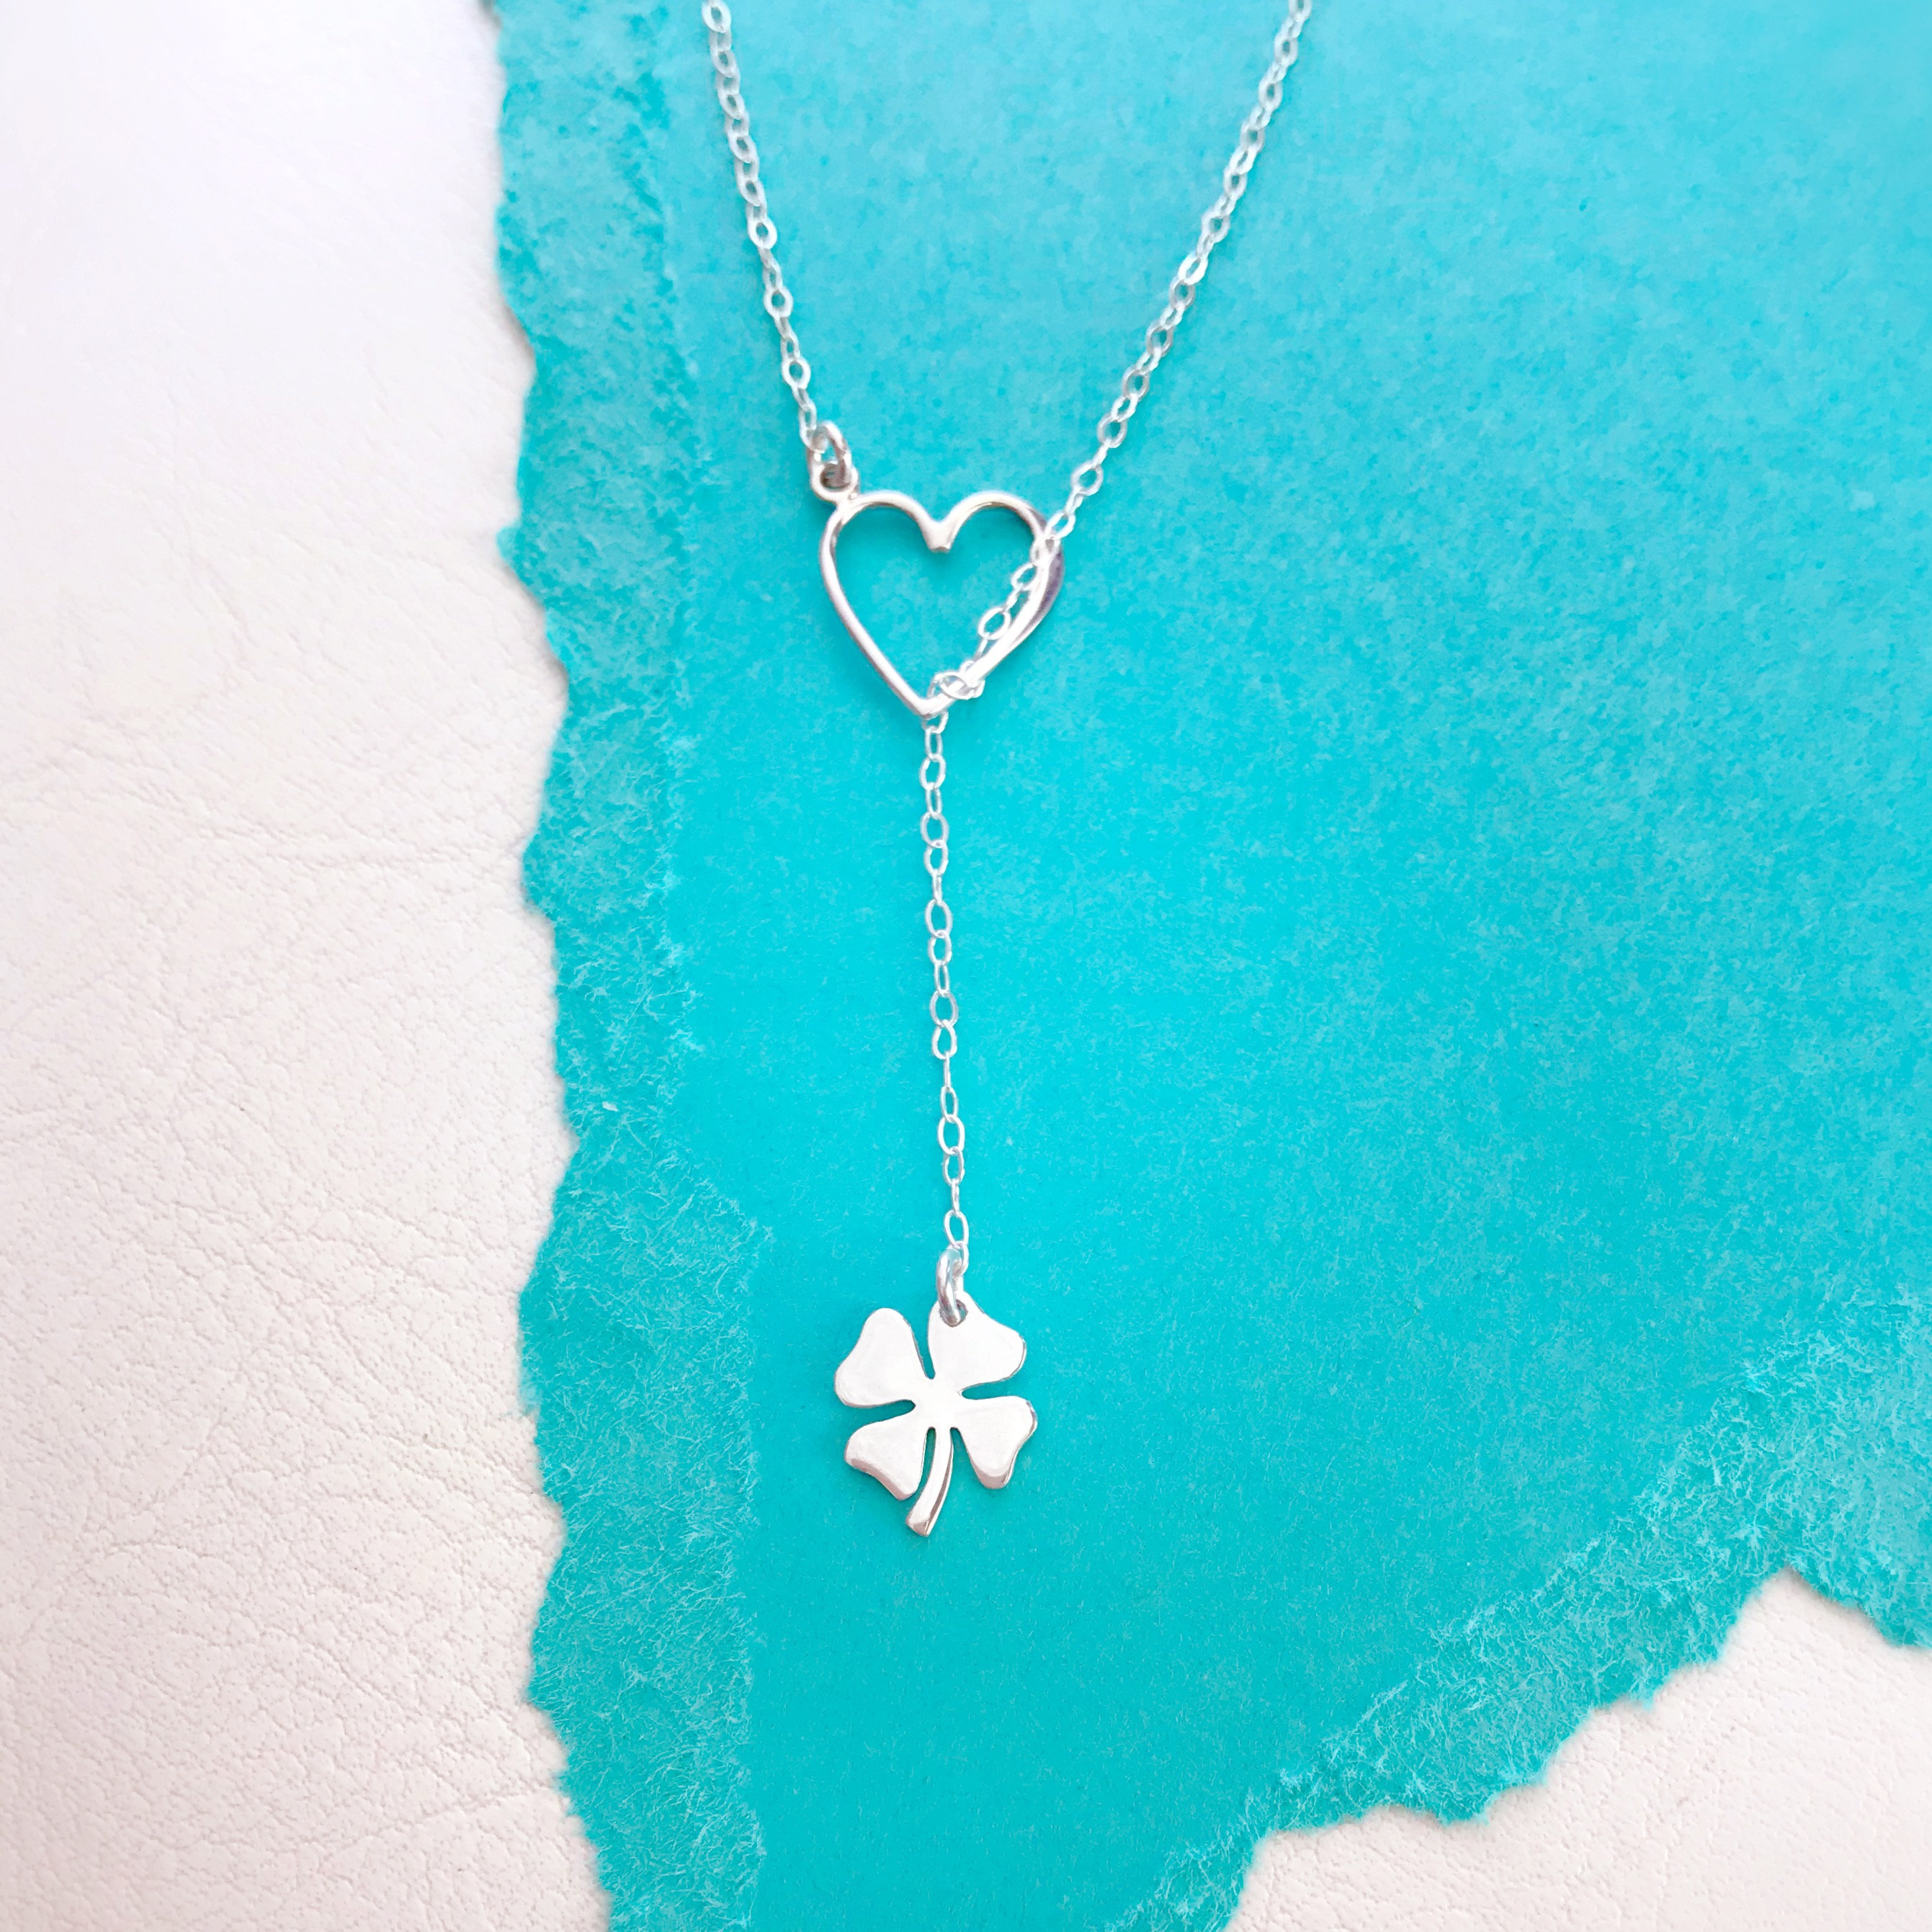 Lucky In Love Necklace, Y Necklace, Lariat, Four Leaf Clover, Shamrock,  Lucky Charm Necklace, Otis B Jewelry, St Patricks Day Wedding Within Latest Lucky Four Leaf Clover Y  Necklaces (View 16 of 25)